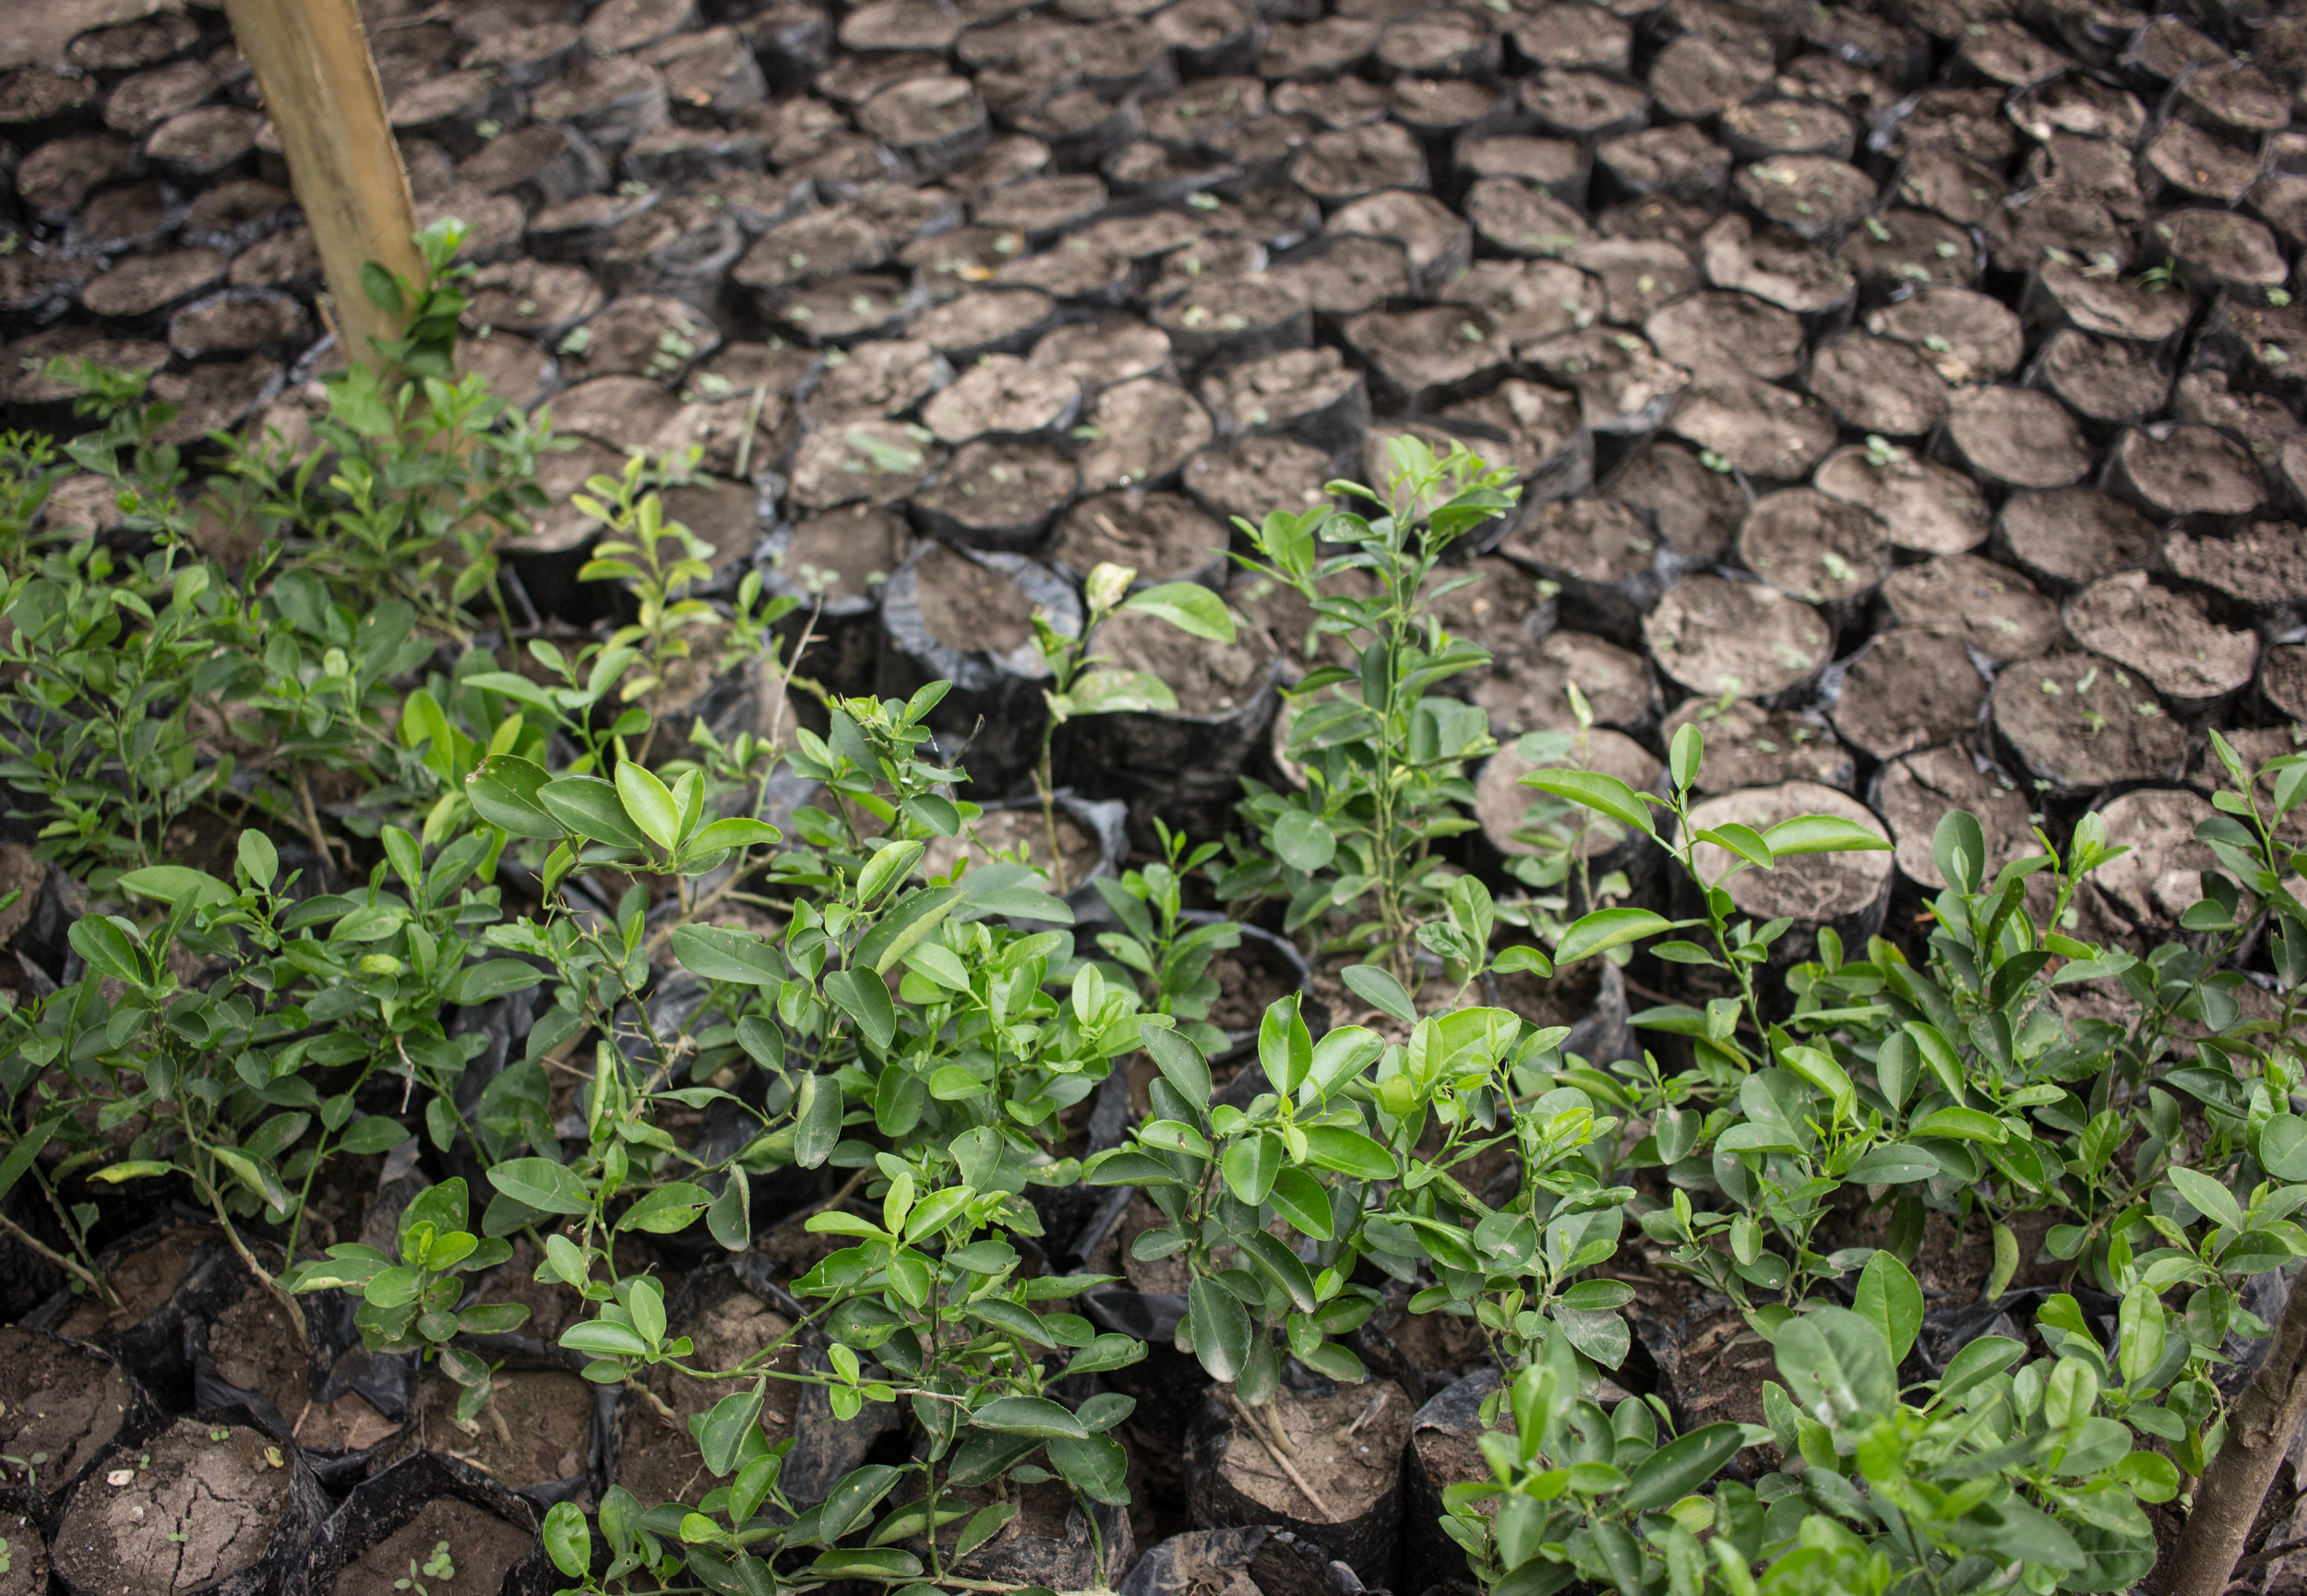 The seedlings of the new include a variety of citrus trees from lemon, lime, orange, and grapefruit